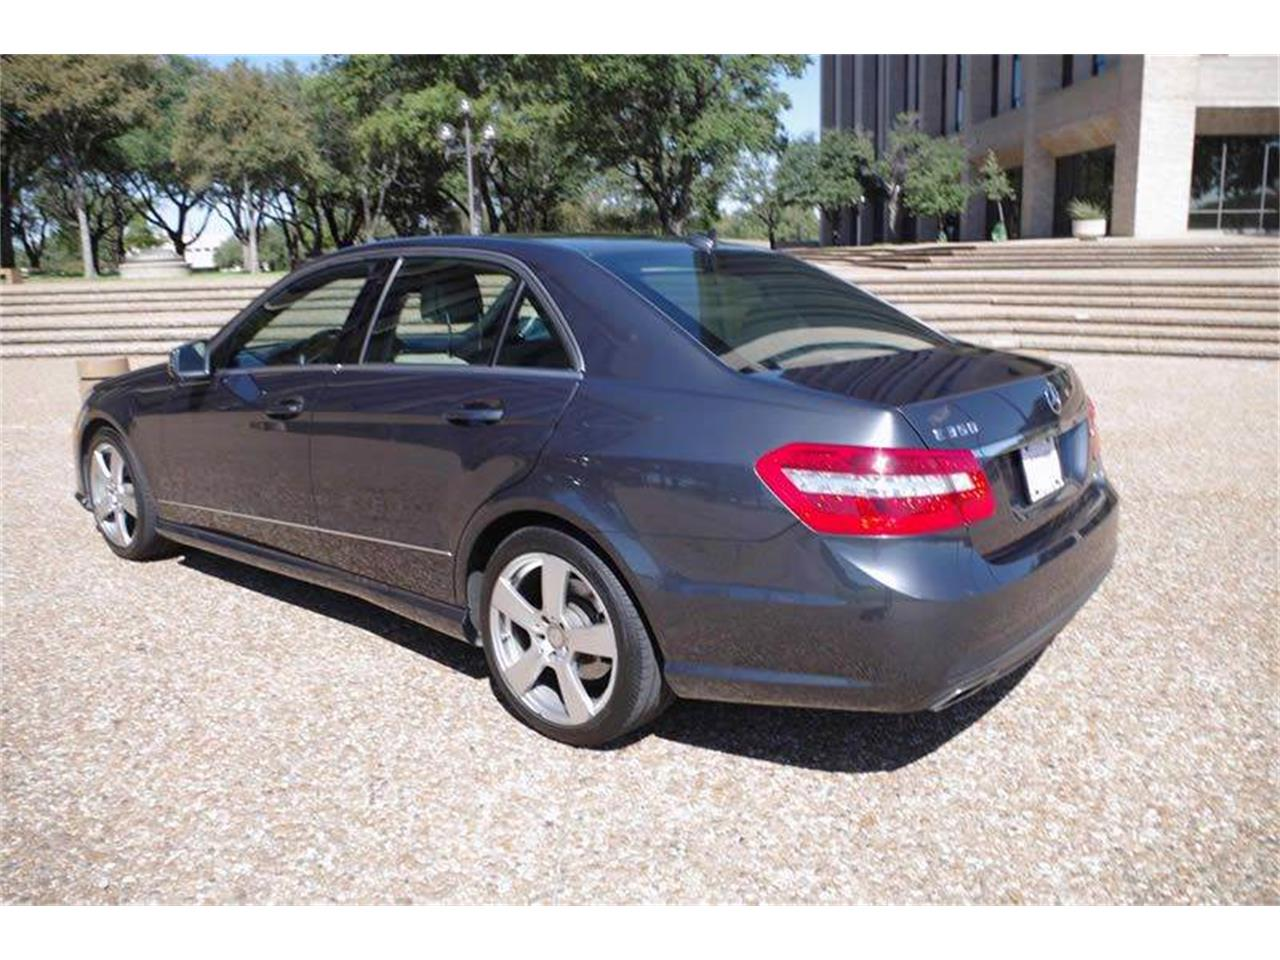 Large Picture of 2010 Mercedes-Benz E-Class located in Fort Worth Texas - $17,900.00 - JJM0